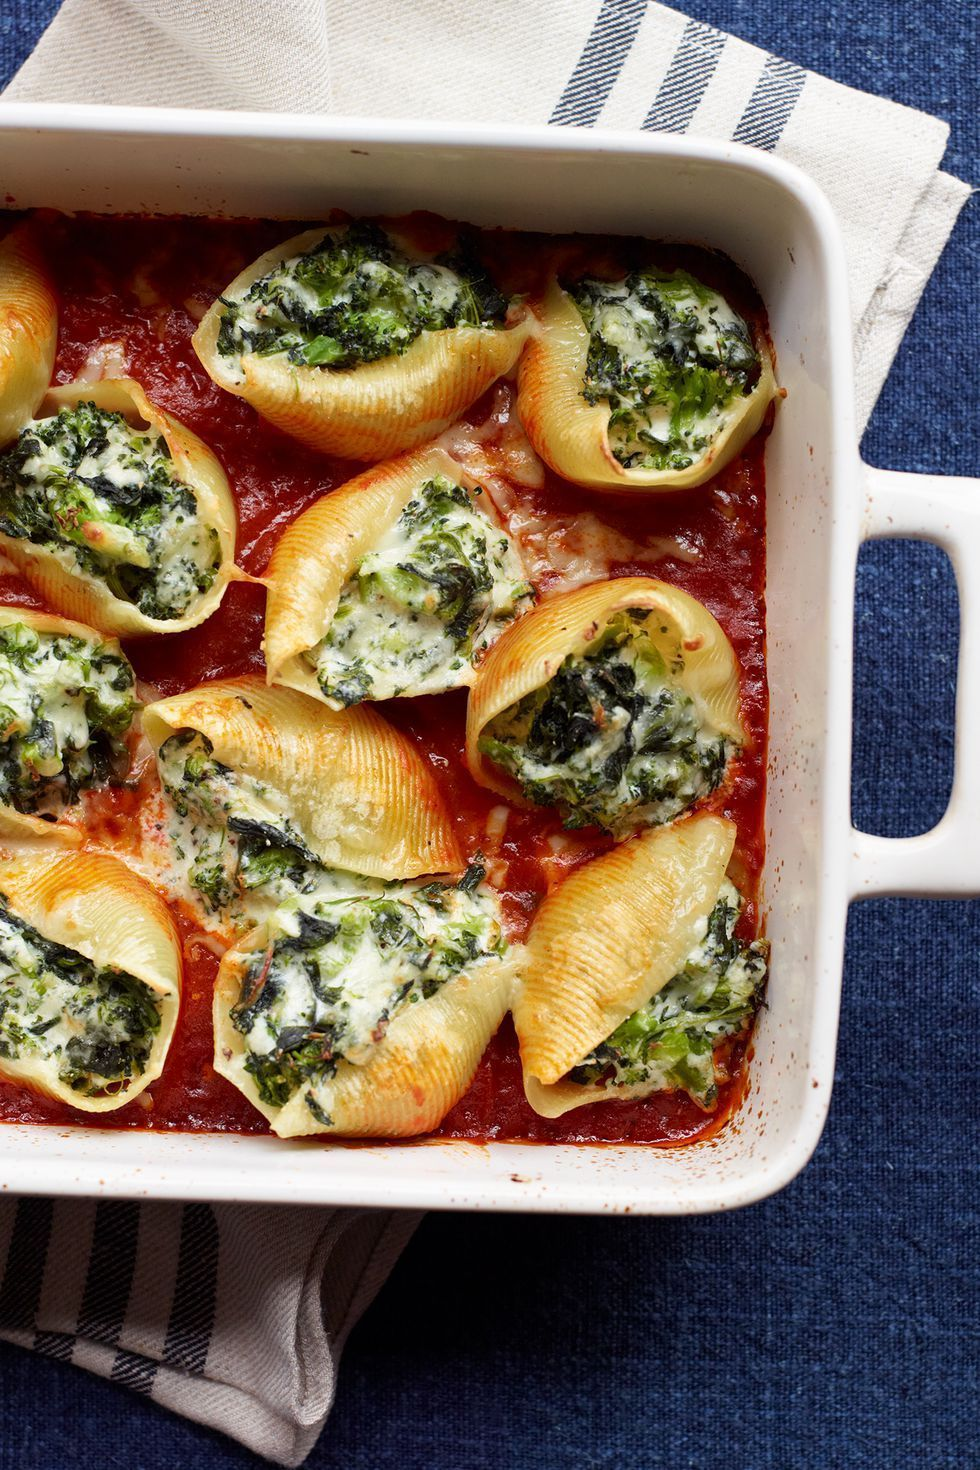 This Christmas Dinner receipes is the perfect Italian staple has all the comfort you'd want from a baked pasta dish, but with the bonus of veggies: Broccoli and spinach are folded into a creamy filling made with Parmesan, mozzarella and ricotta.